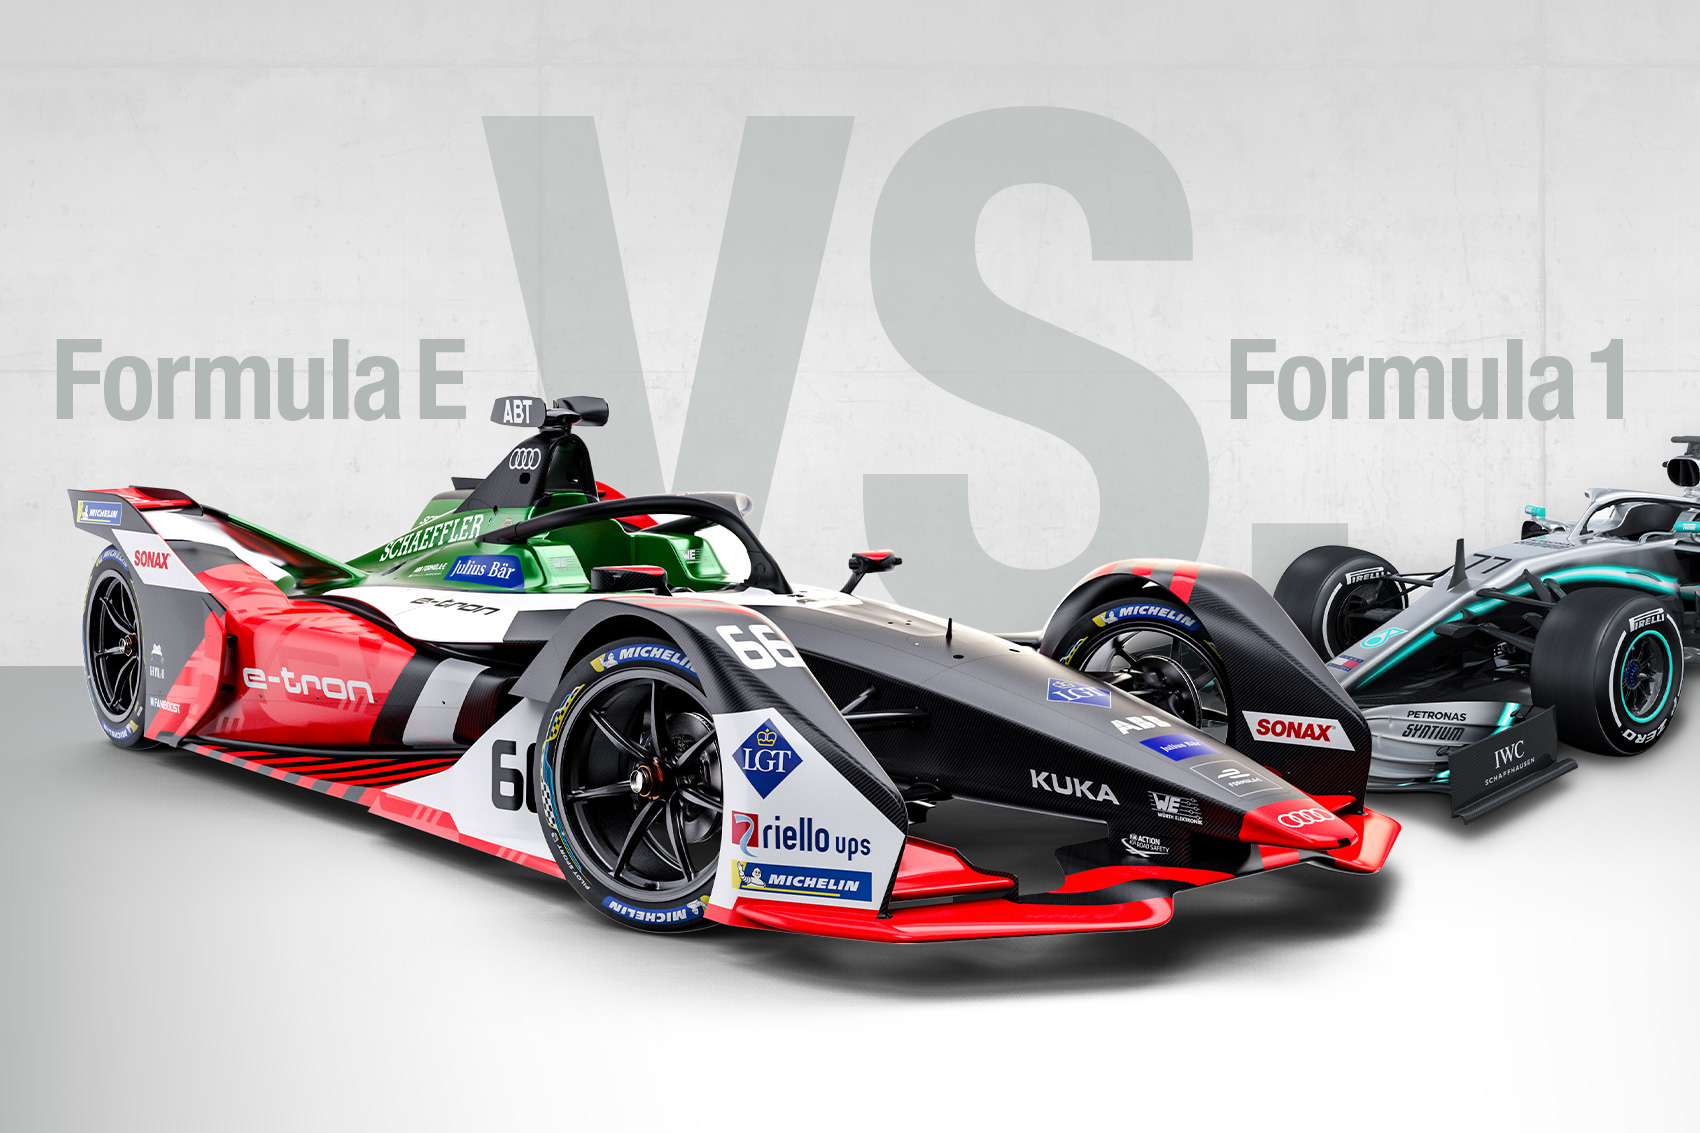 Audi-Formula-E-Car-vs-Mercedes-F1-Car